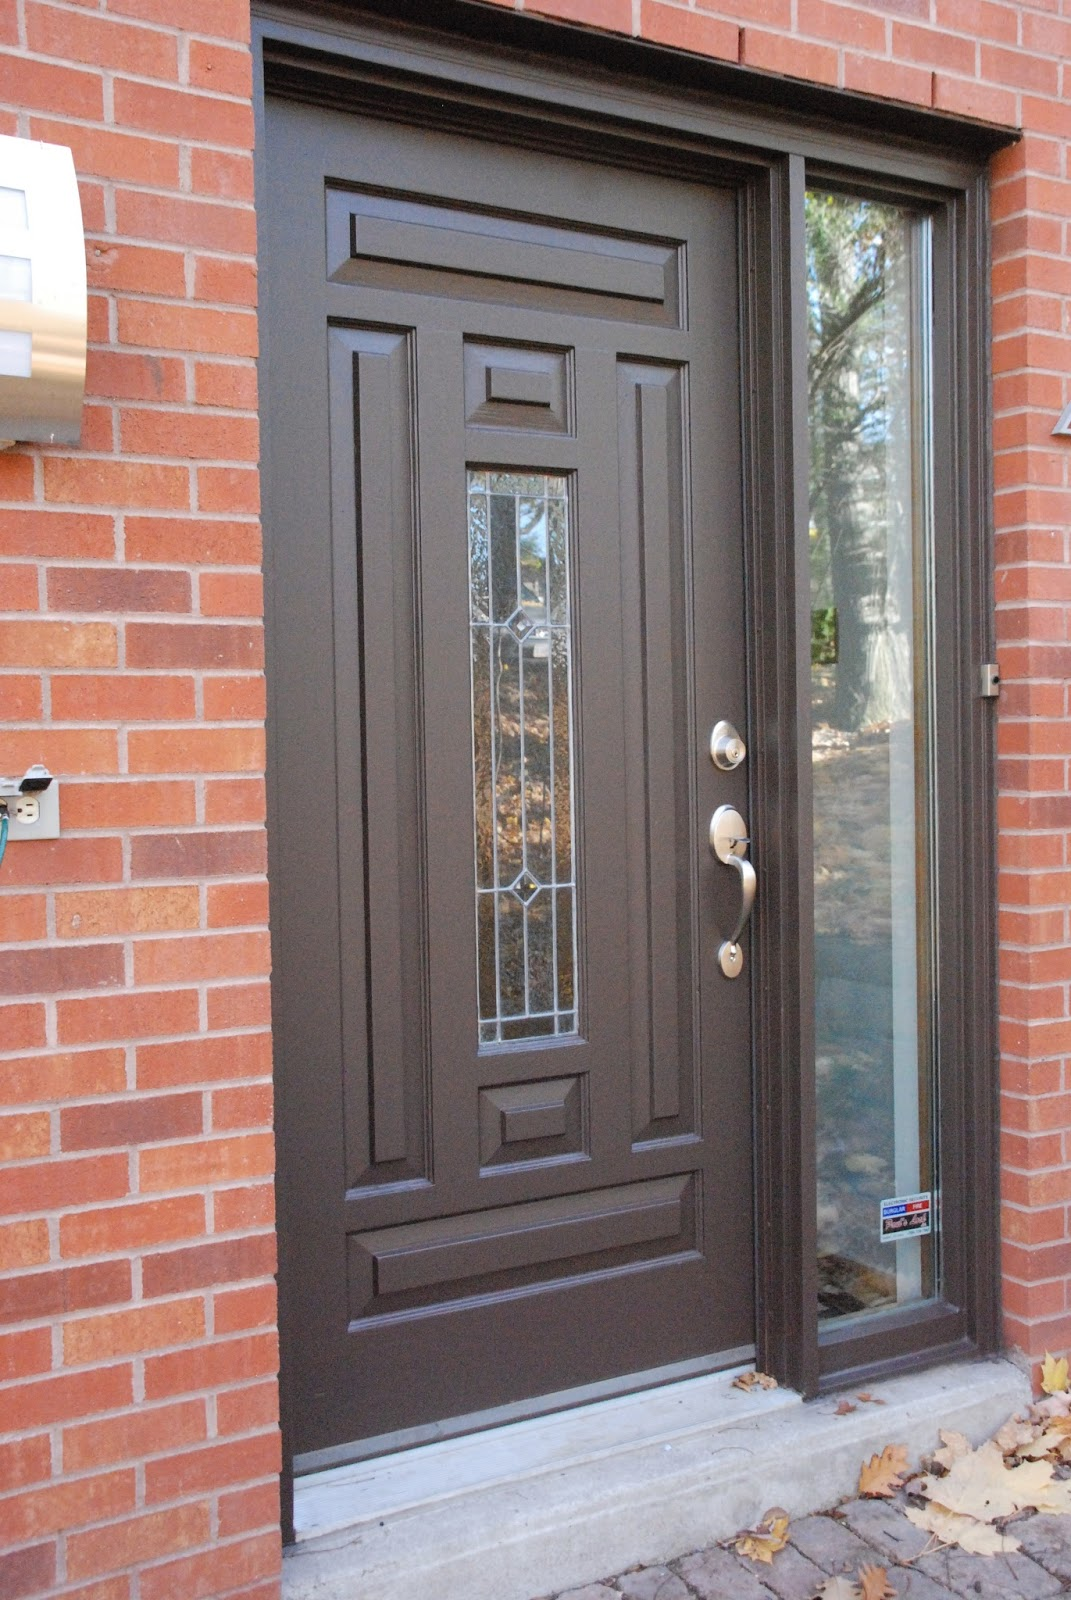 After some discussion we decided it would be good to paint the front door with an HVLP sprayer rather than our nice Purdy paint brushes. & Downtown Barrie Modern Home - Colour me Commercial Brown | Fun Spray ...